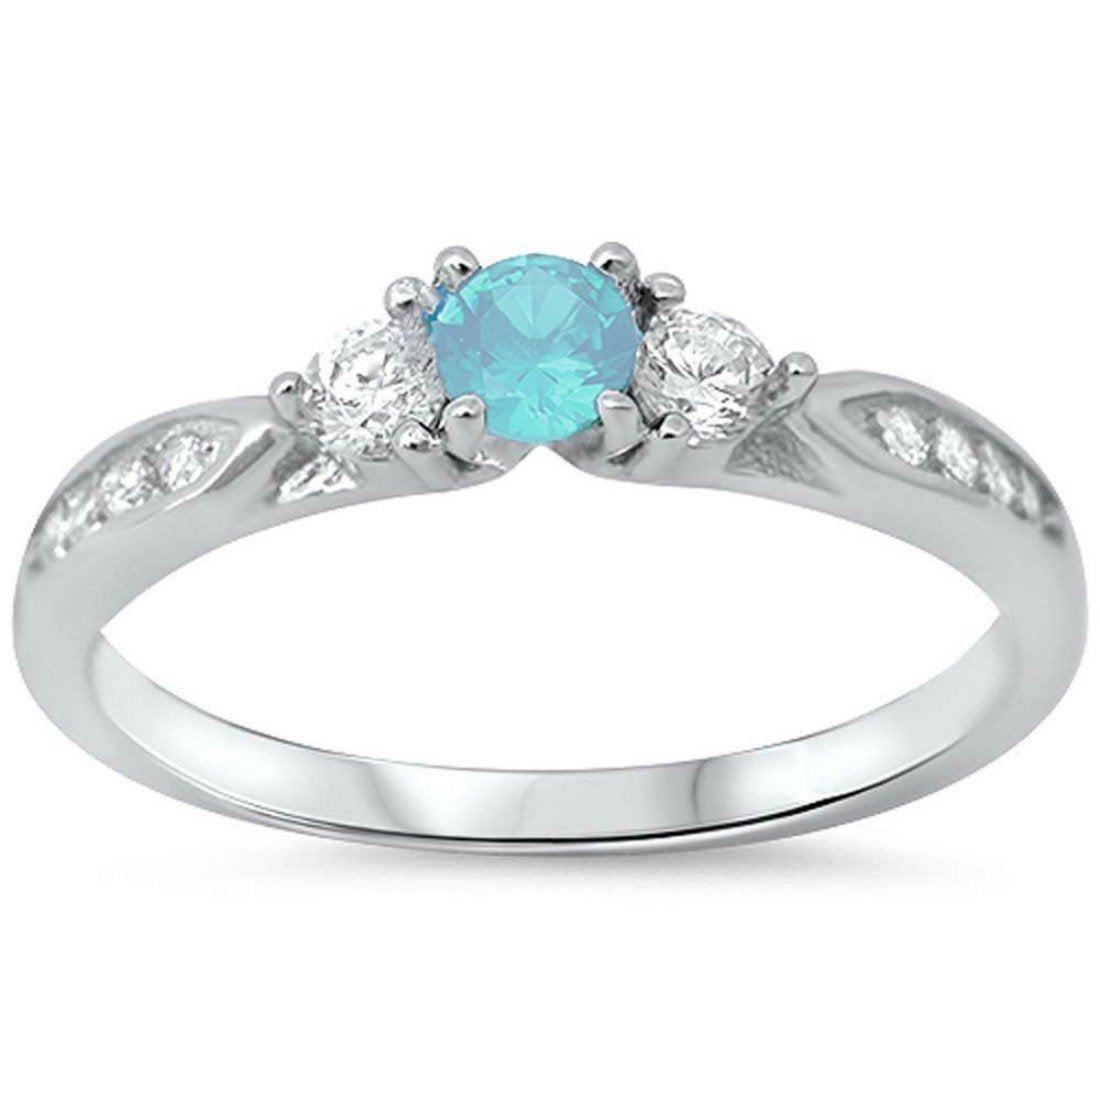 3-Stone Engagement Promise Ring Simulated Aquamarine CZ 925 Sterling Silver